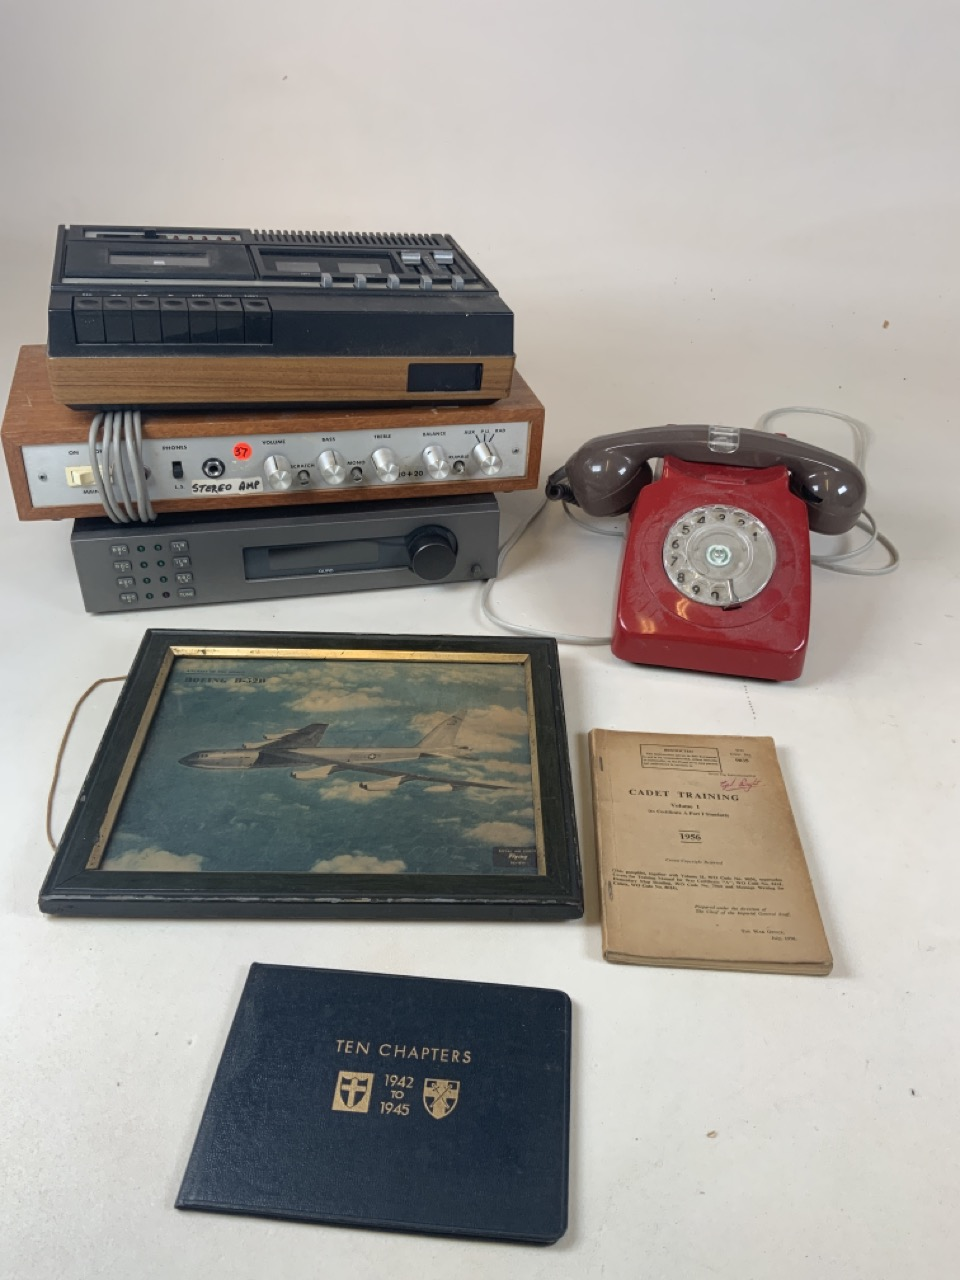 A vintage red phone together with a framed probing of Boeing B-52B, a Cadet Manuel 1956, Ten